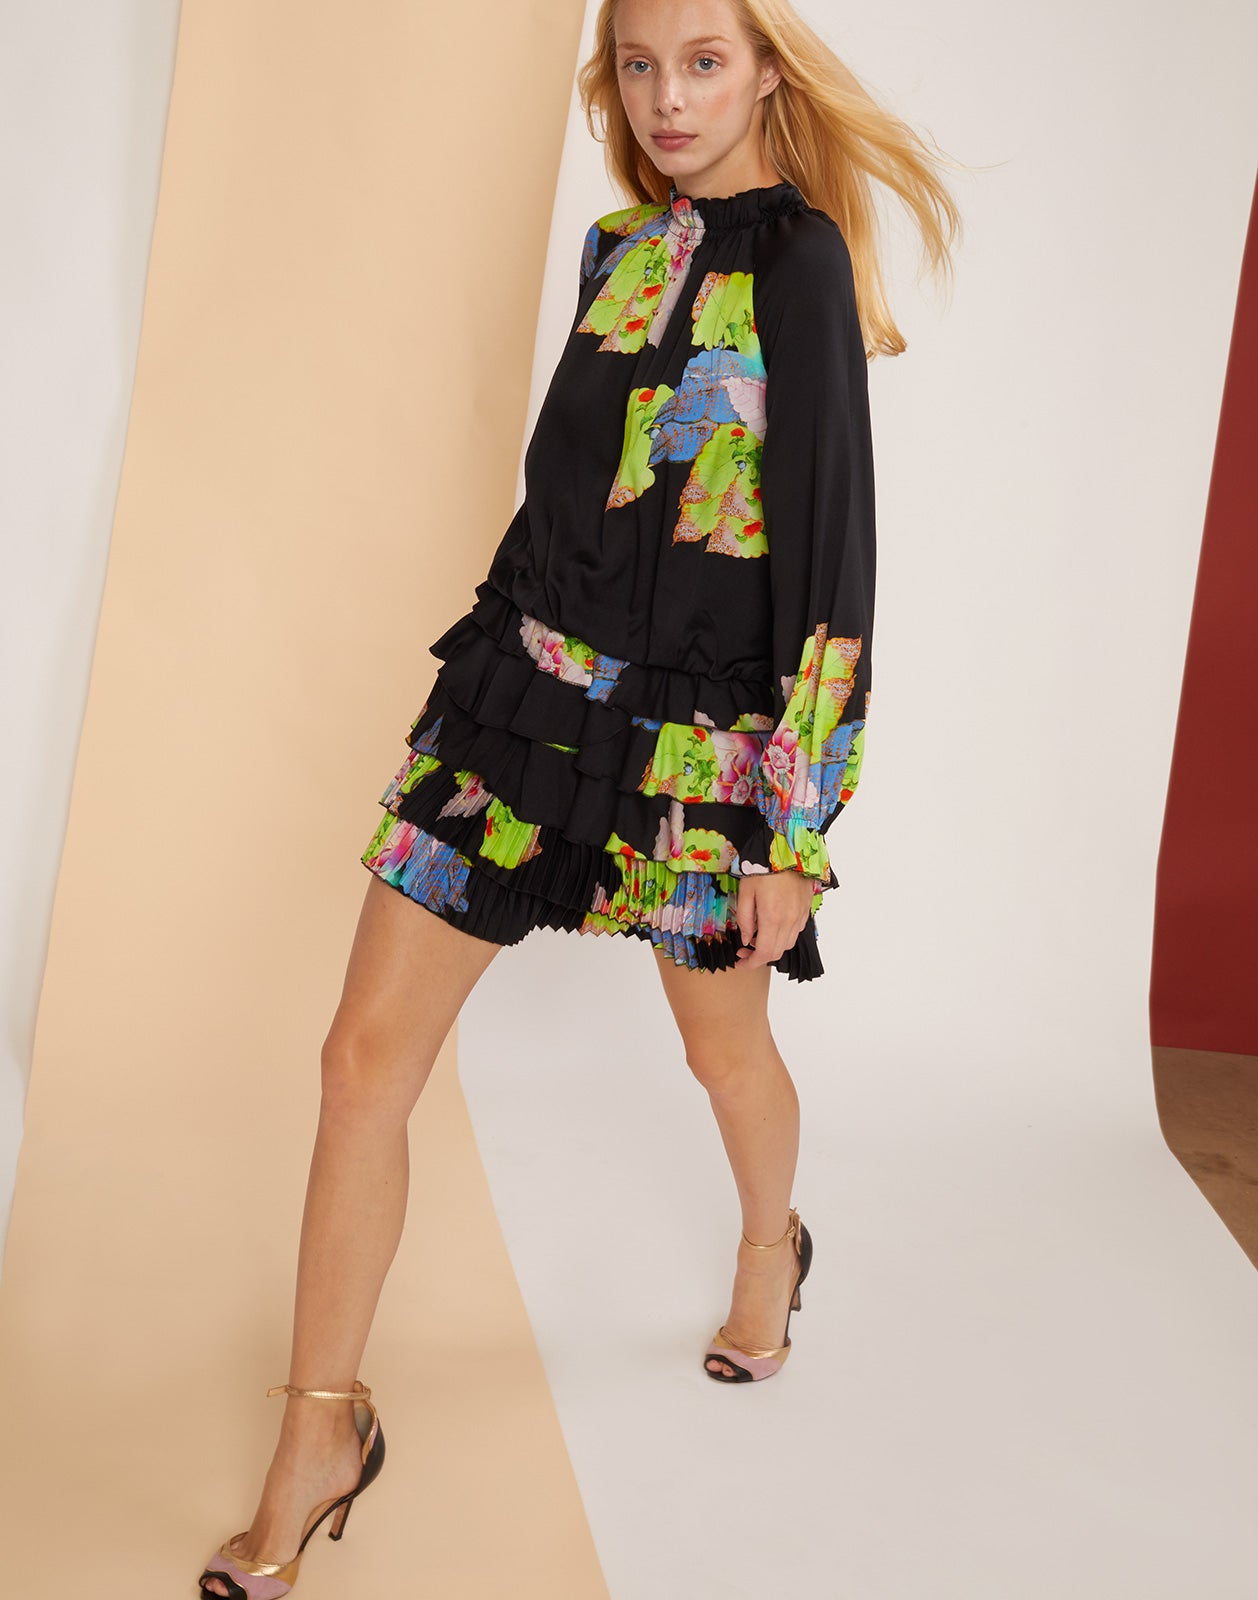 Diagonal view of model walking in the Amalfi Floral Leaf Mini Dress with hair blowing.